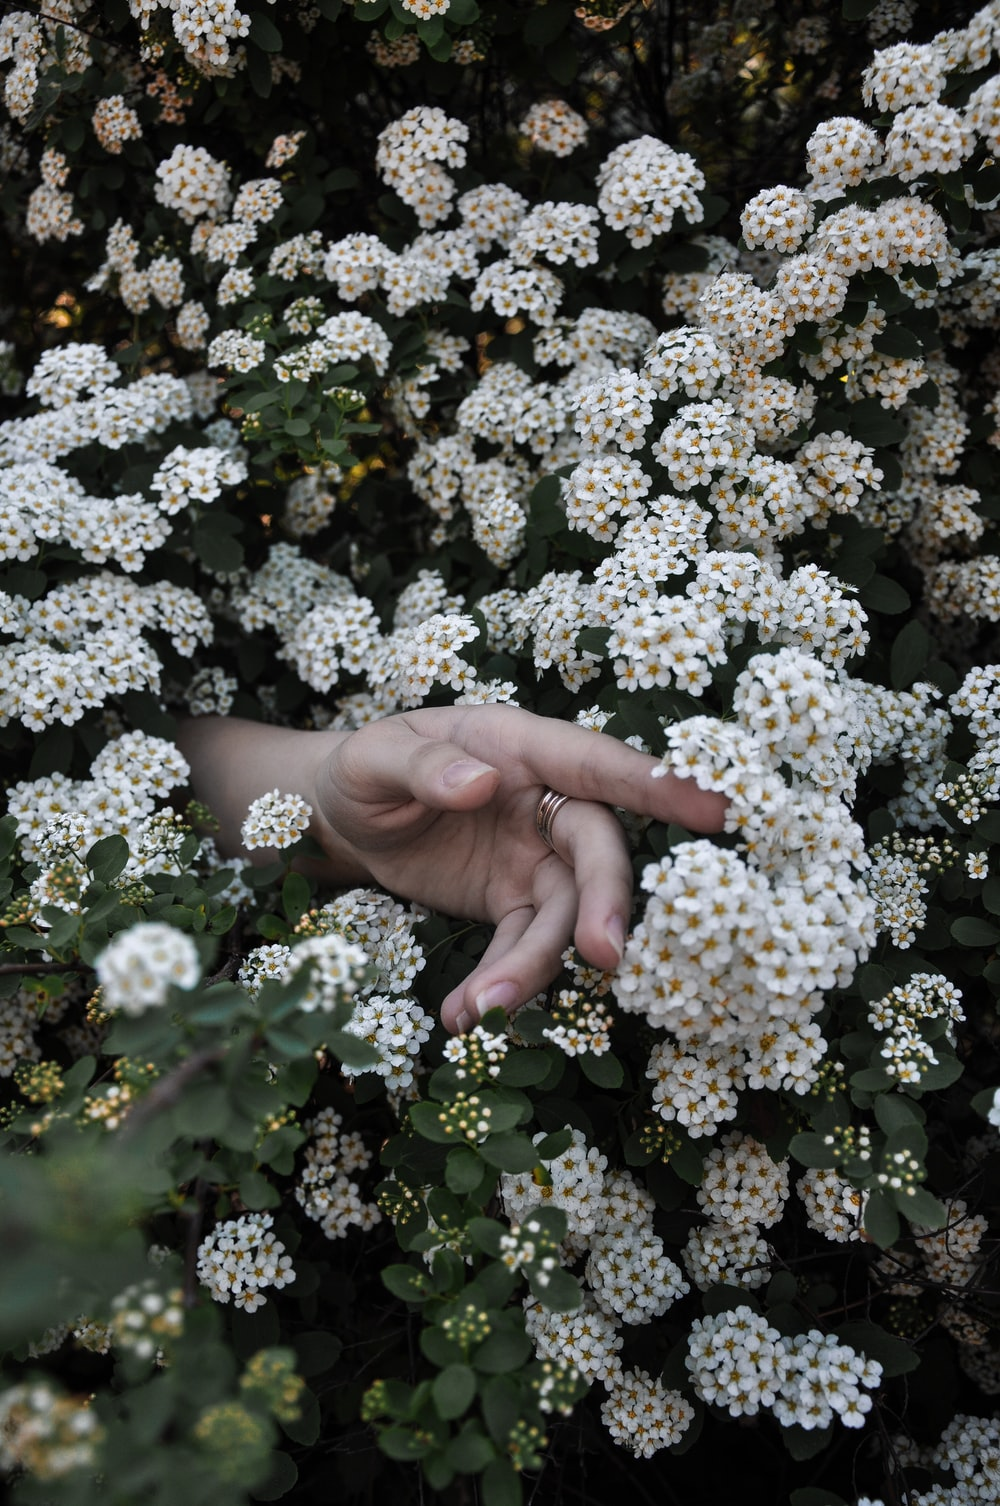 person's hand between white cluster flowers